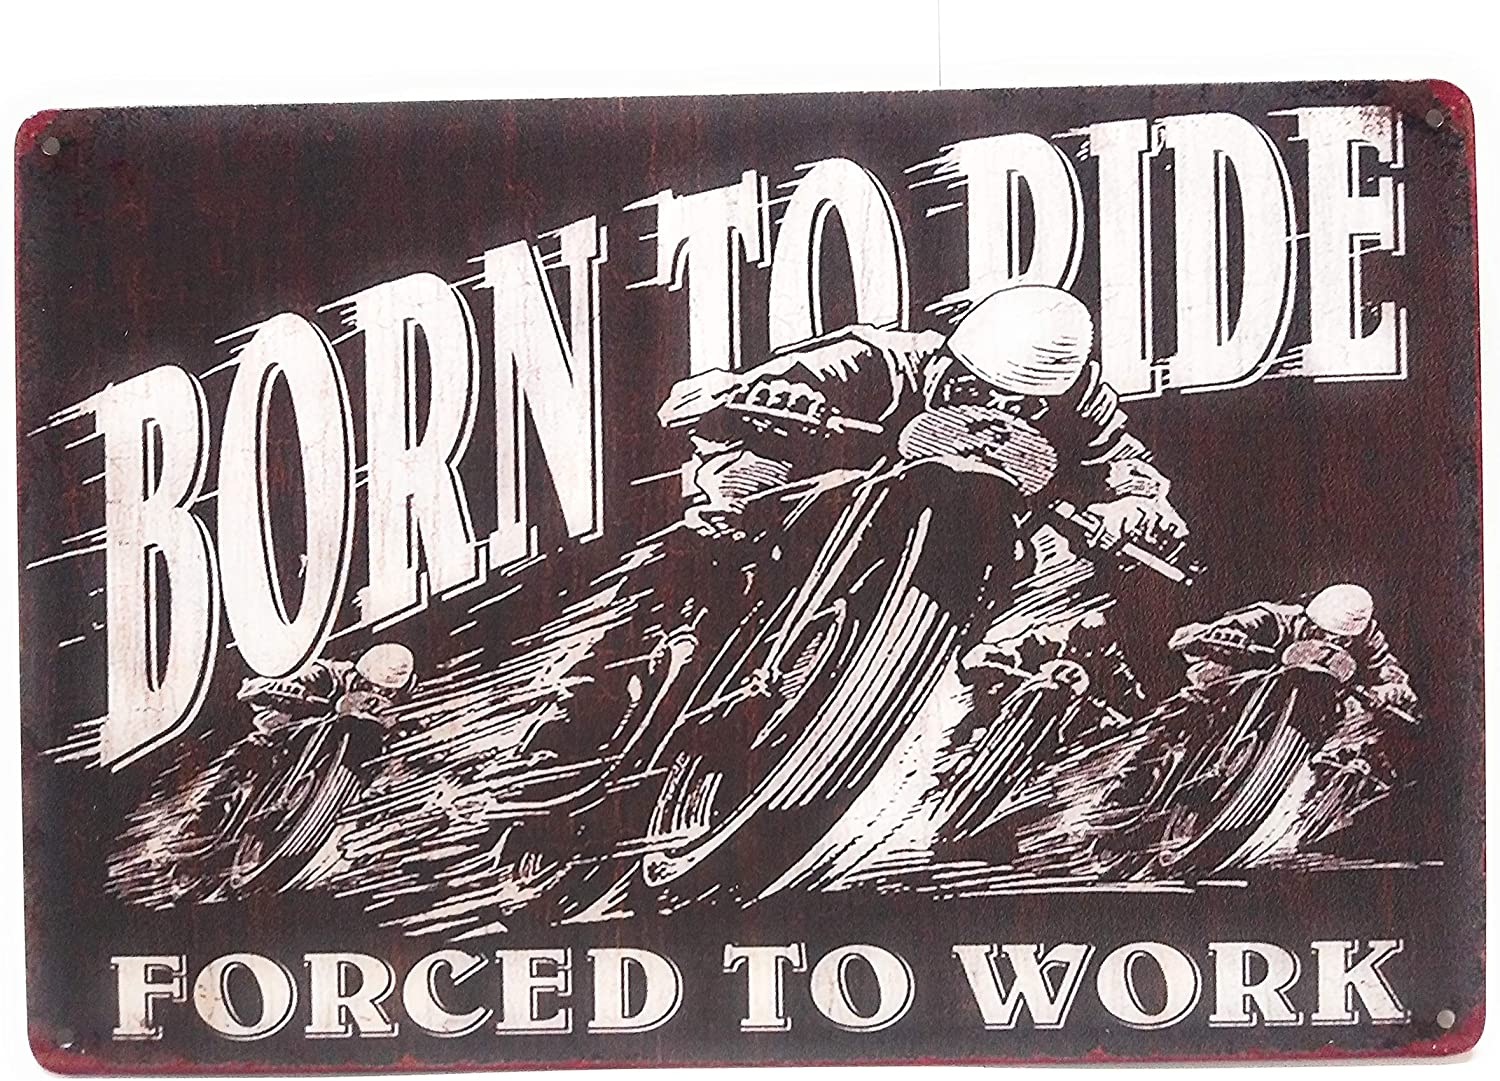 Born To Ride. Forced to Work Tin Sign, Vintage Sign, Born to Ride Sign, Shop Decor, Garage Sign, Motorcycle Sign, Home Decor, Office Decor, 8-inch by 12-inch Sign | TSC432 |